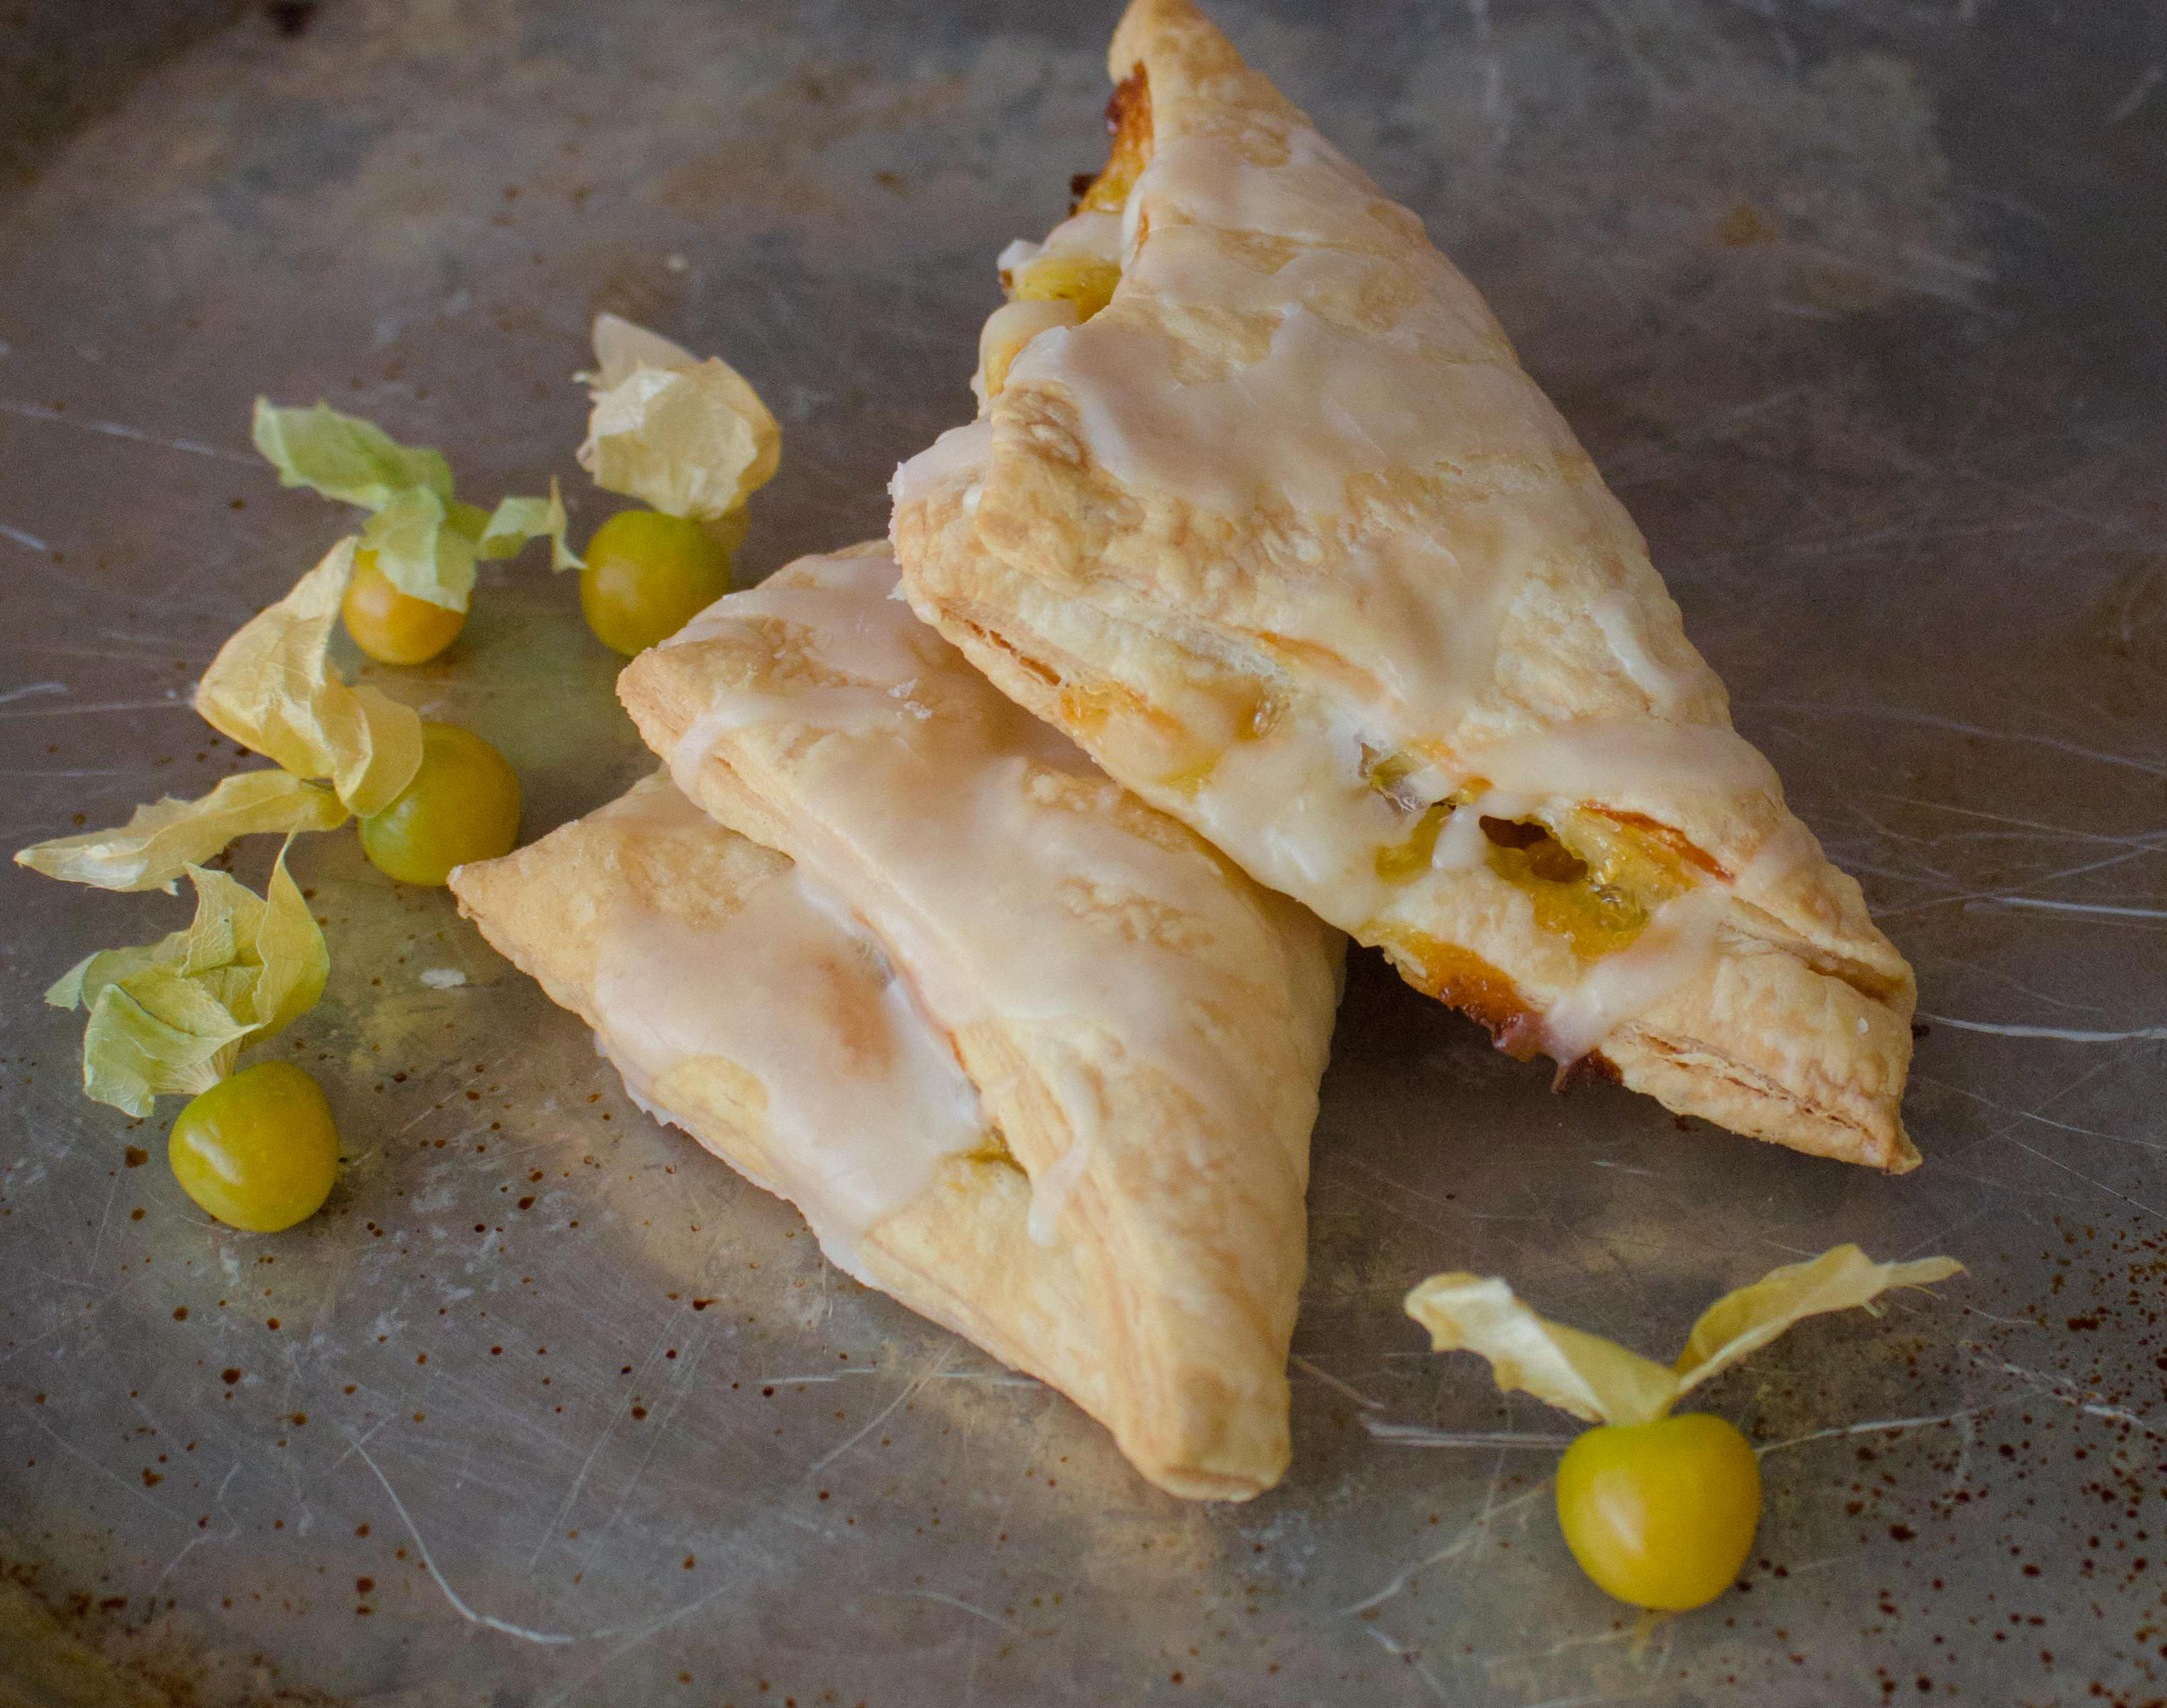 Ground Cherry (Physalis) Turnovers